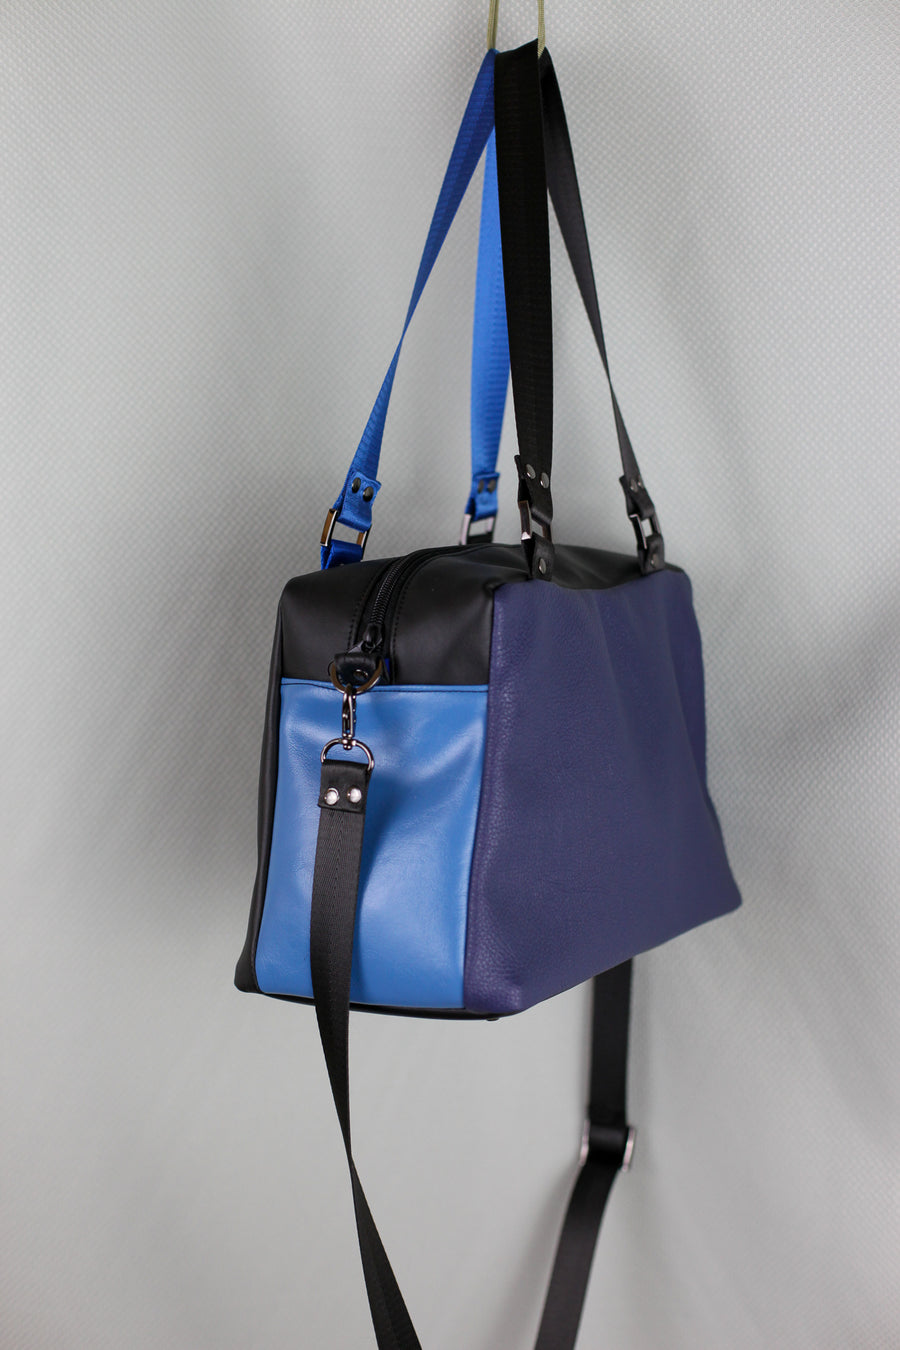 Black on Blue Faux Leather Quinn Handbag